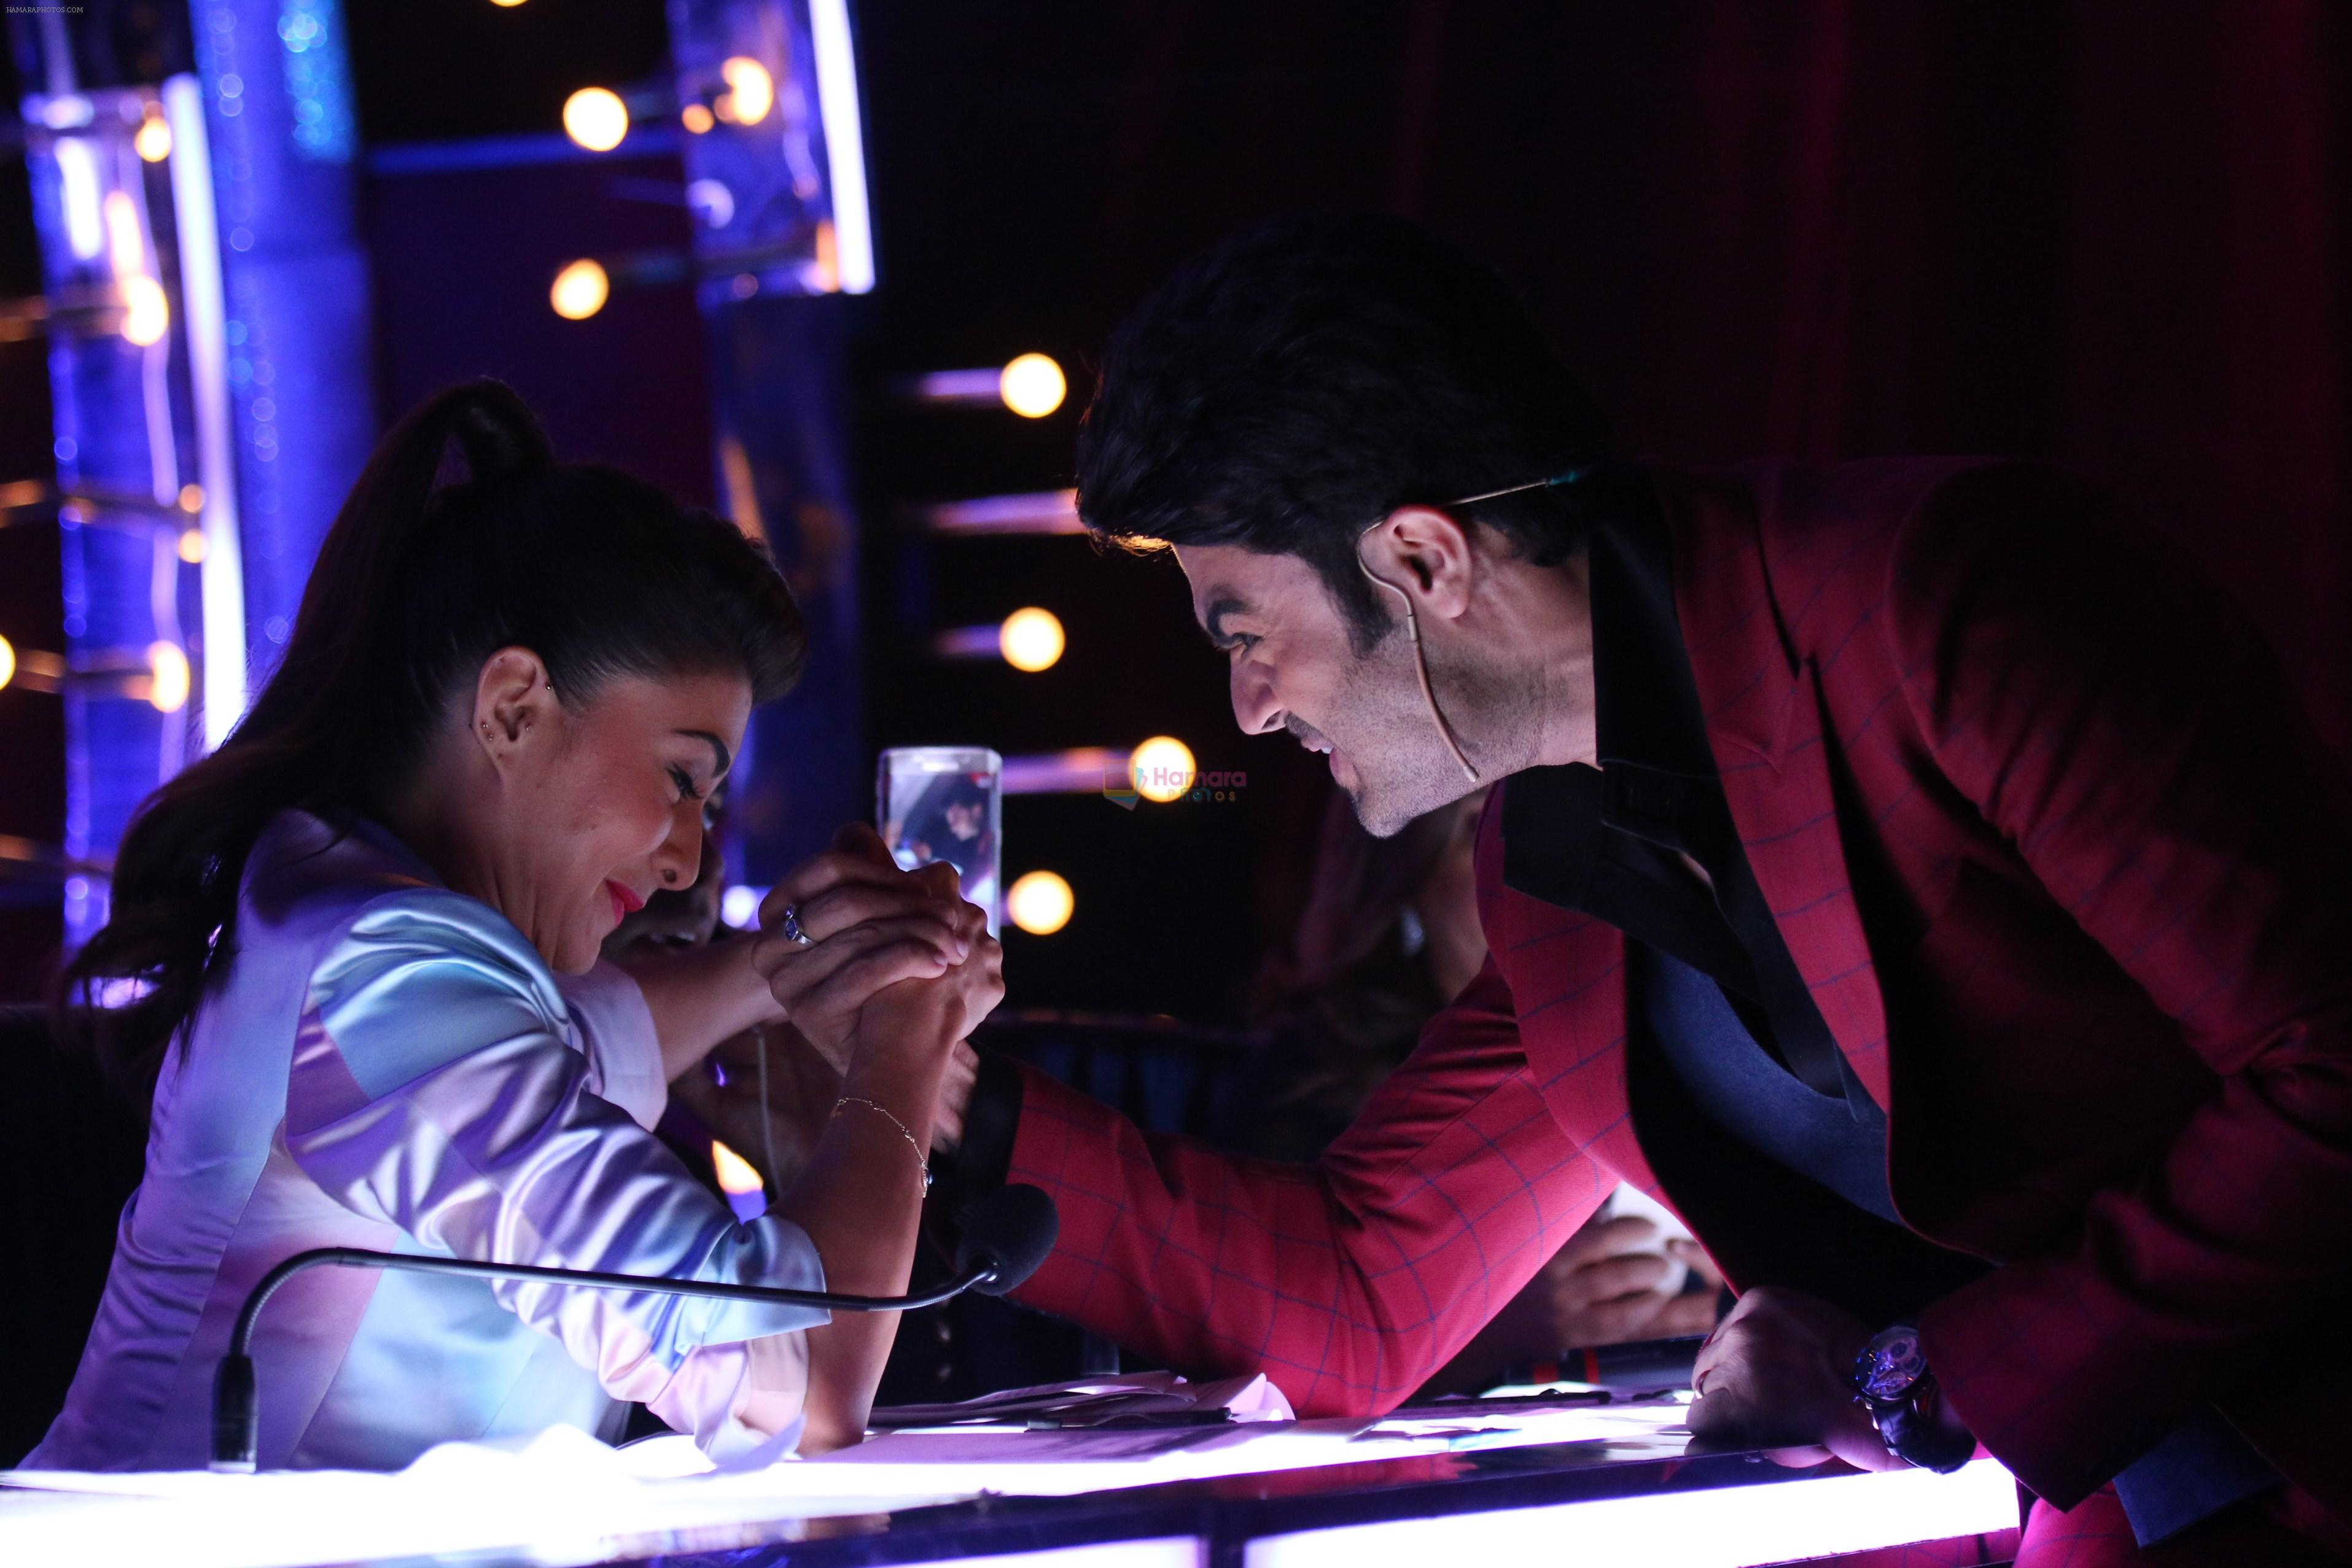 Jacqueline Fernandez & Manish Paul arm wrestling competition on the sets of Jhalak Dikhhla Jaa